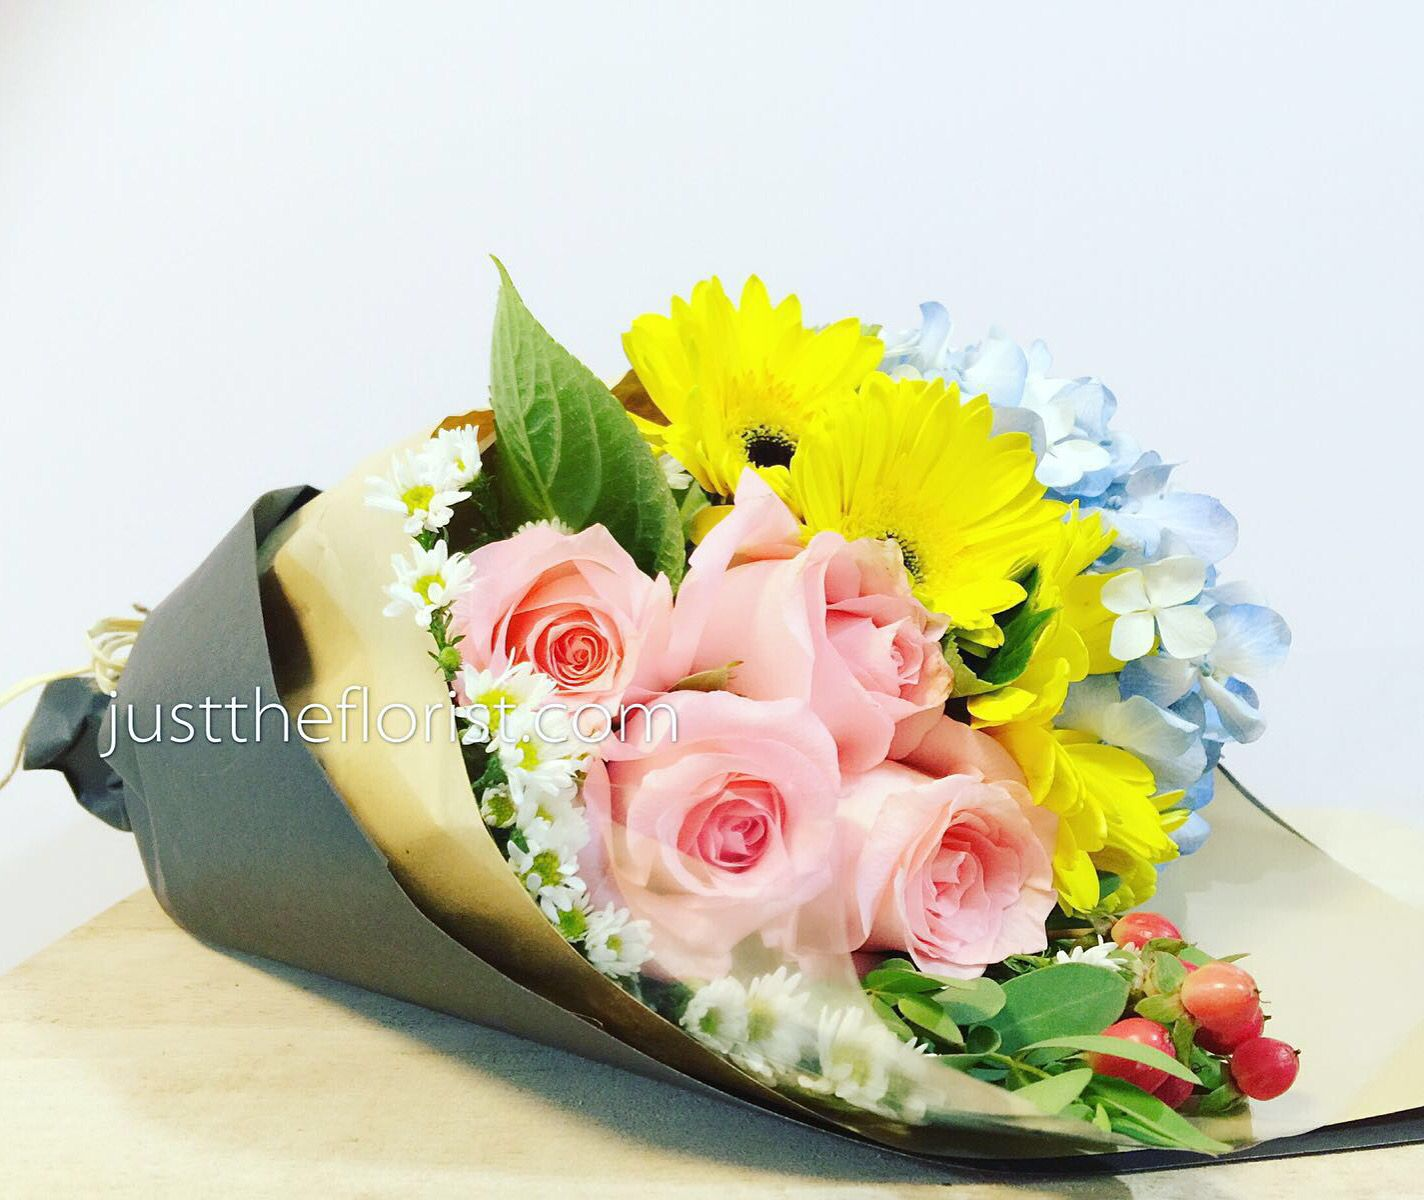 What can be better than receiving this colourful bouquet filled with blue hydrangea, bright yellow gerbera and sweet pink roses. Send & save 20% today! #justtheflorist #sgflorist #surprise #birthday #gerbera #hydrangea #rose #tgif